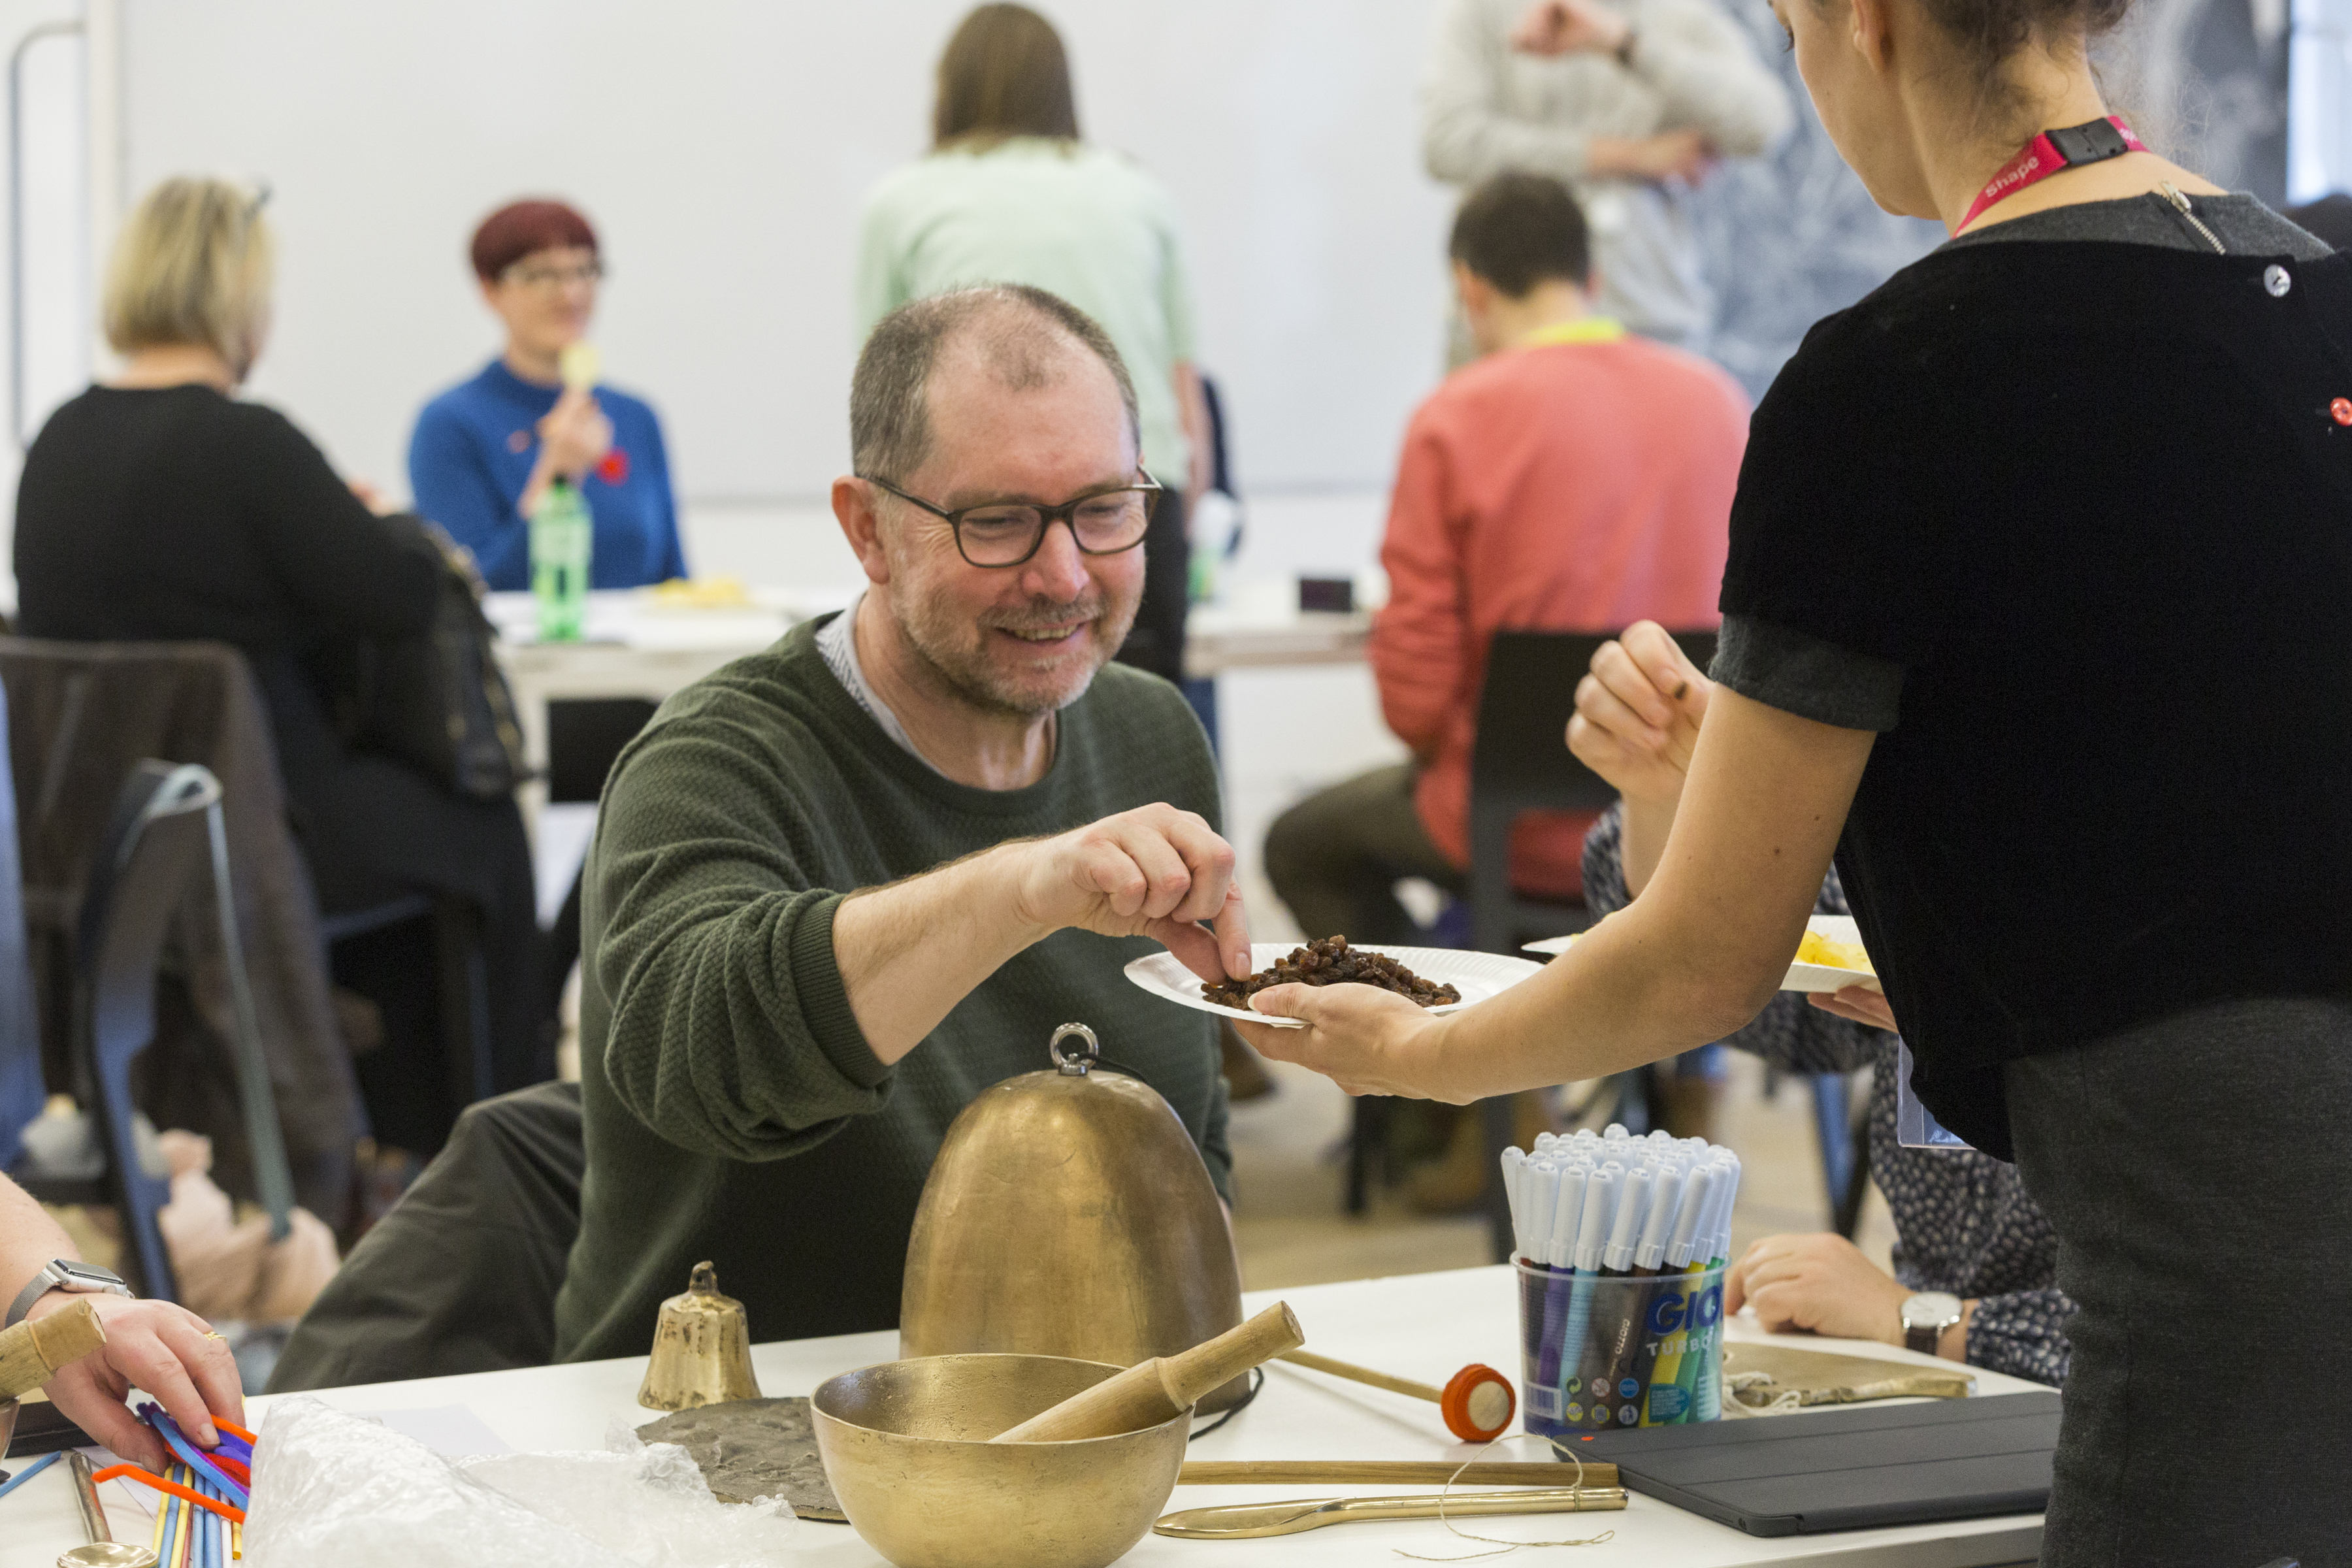 man leans forward whilst involved in aworkshop; the man is surrounded by other people, all of whom are using art materials in an atmosphere of enjoyable activity